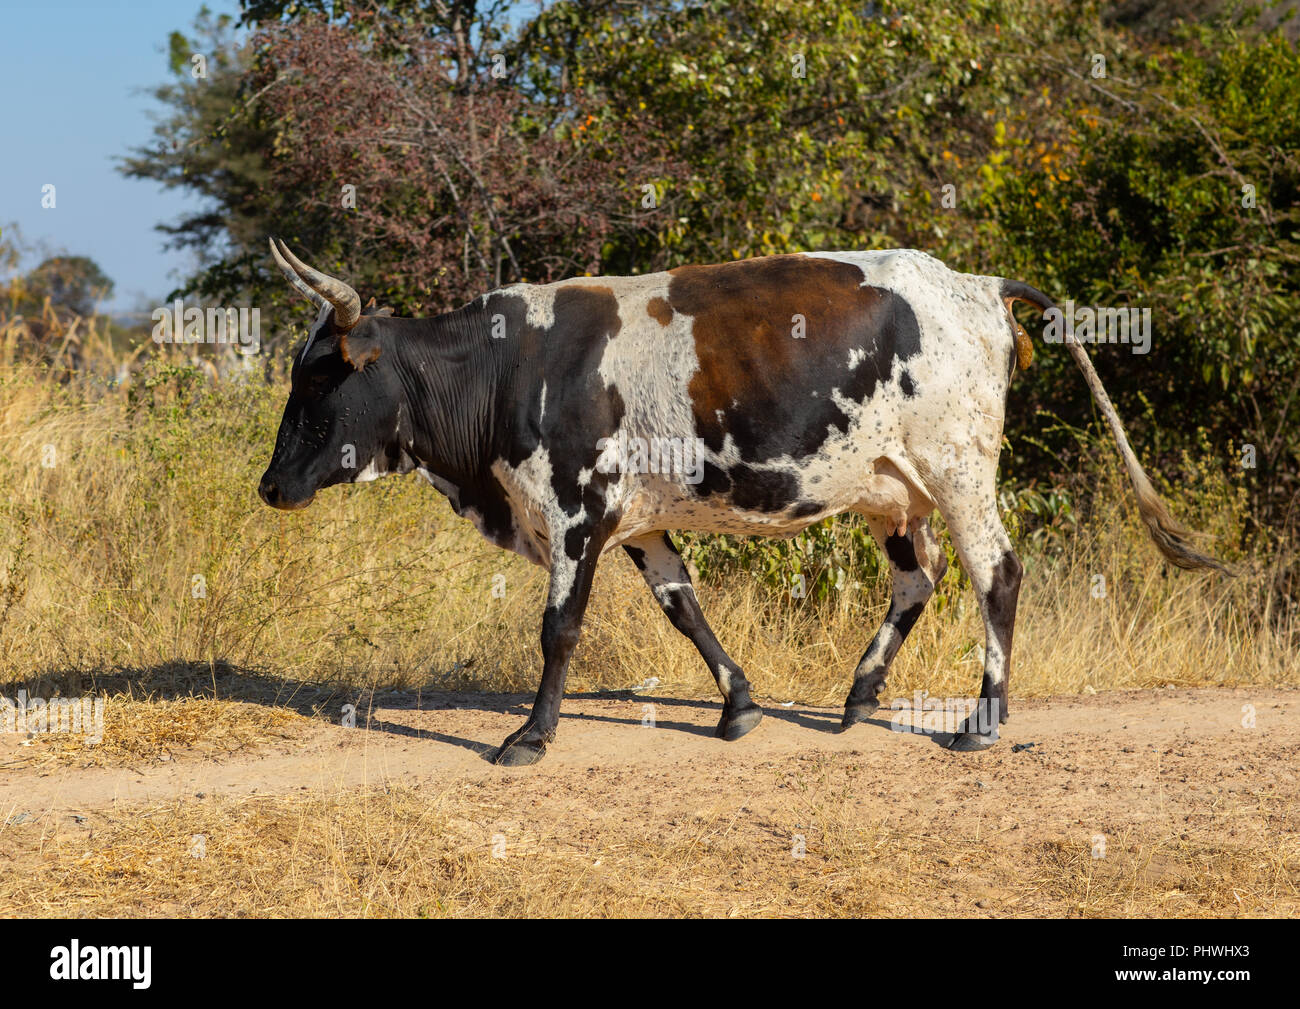 A cow walks in the bush, Huila Province, Chibia, Angola Stock Photo